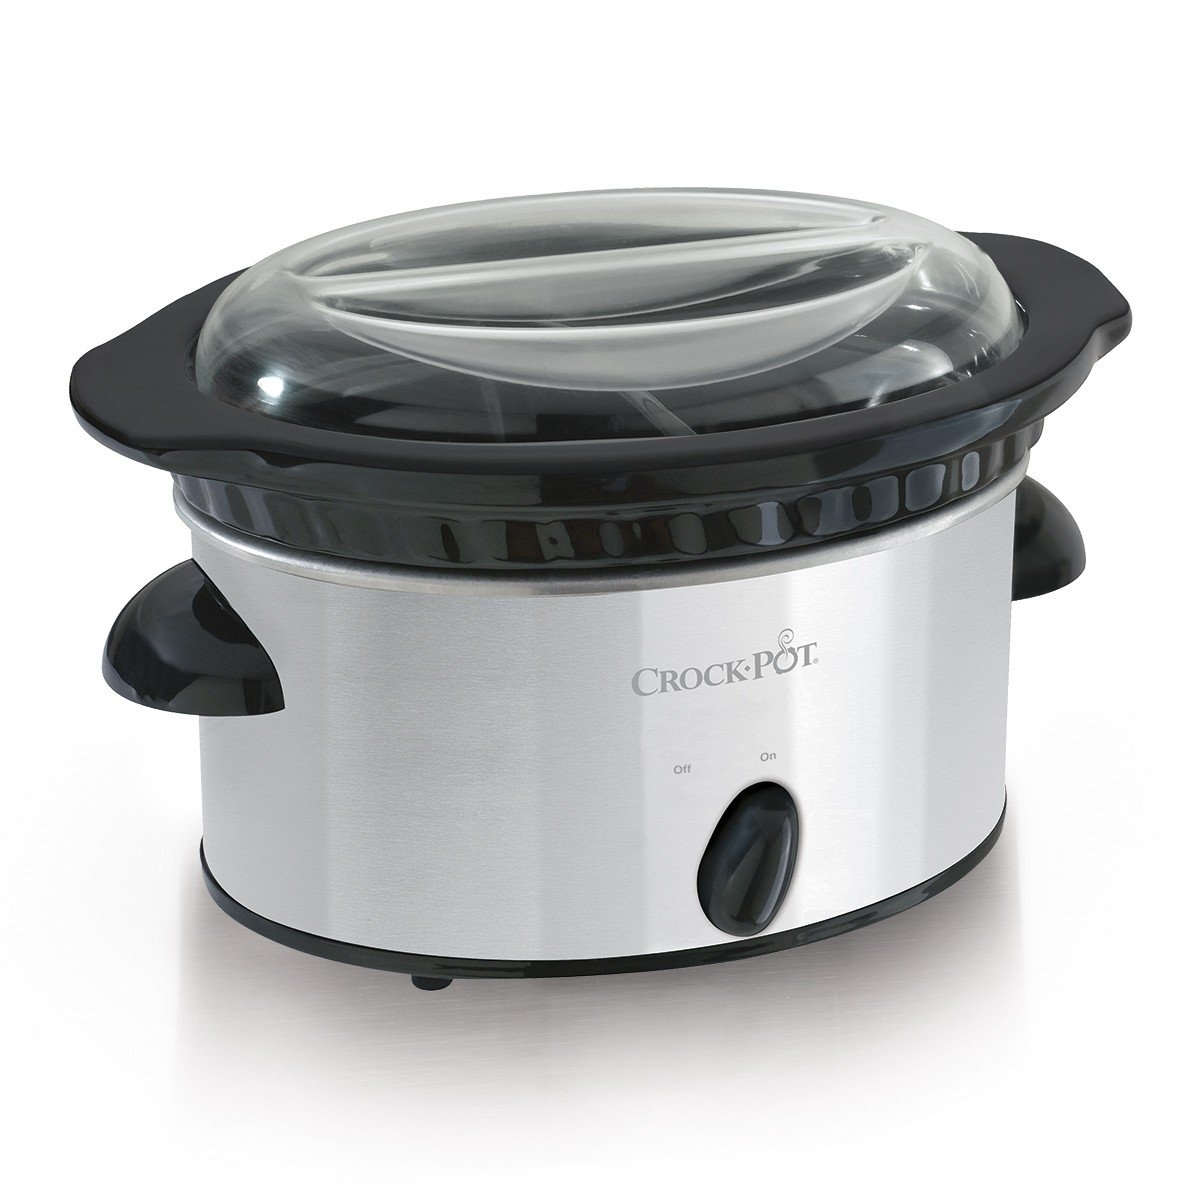 Amazon.com: Crock-Pot SCDD-SS Double Dipper Warmer Slow Cooker ...